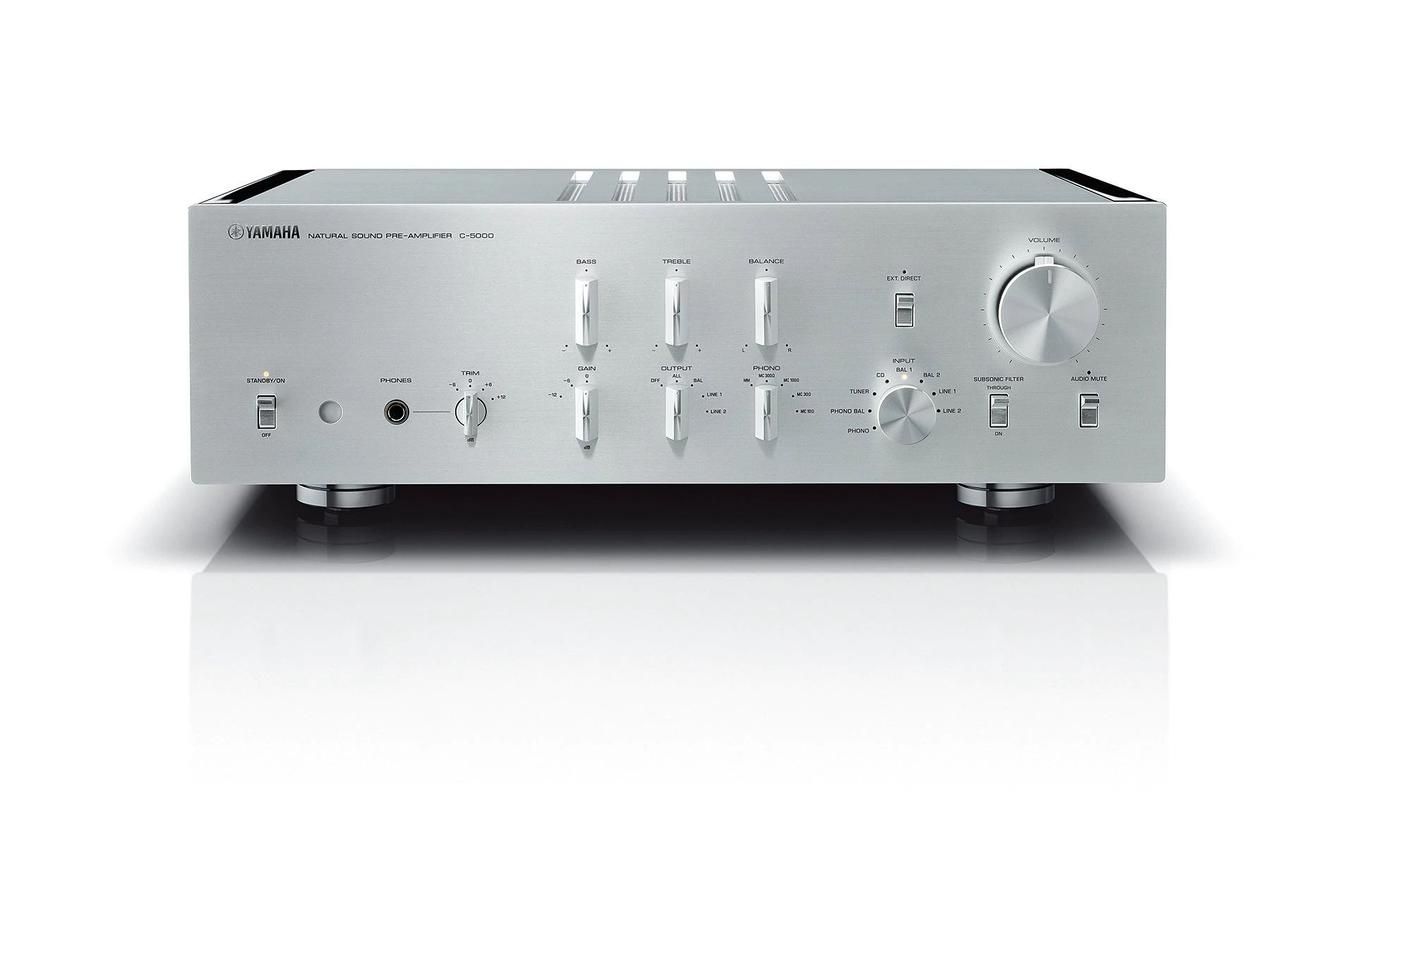 The C-5000 pre-amplifier from Yamaha